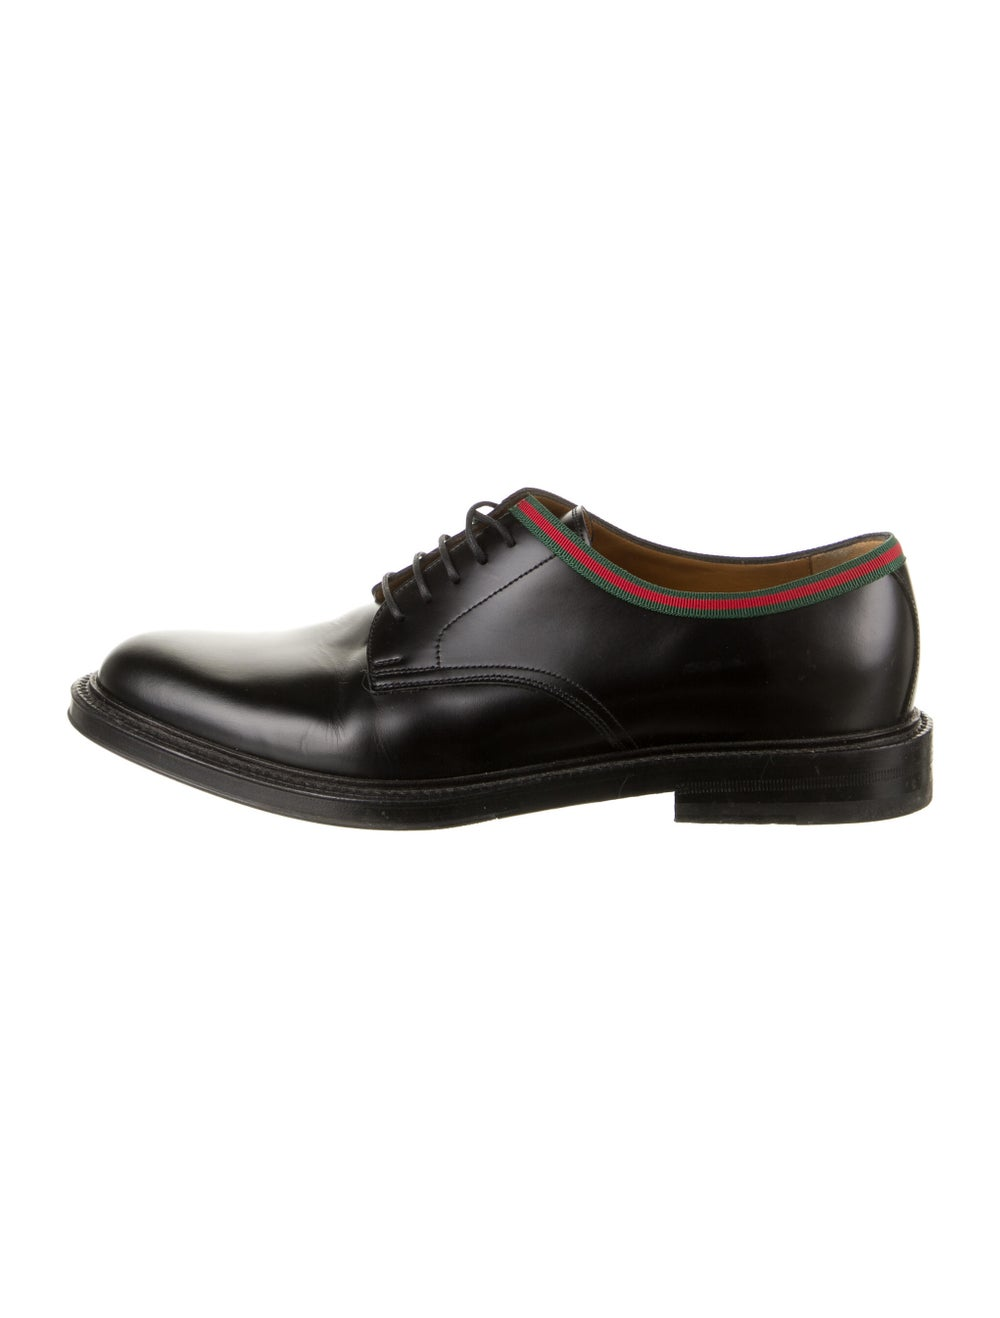 Gucci Web Accent Leather Derby Shoes Black - image 1